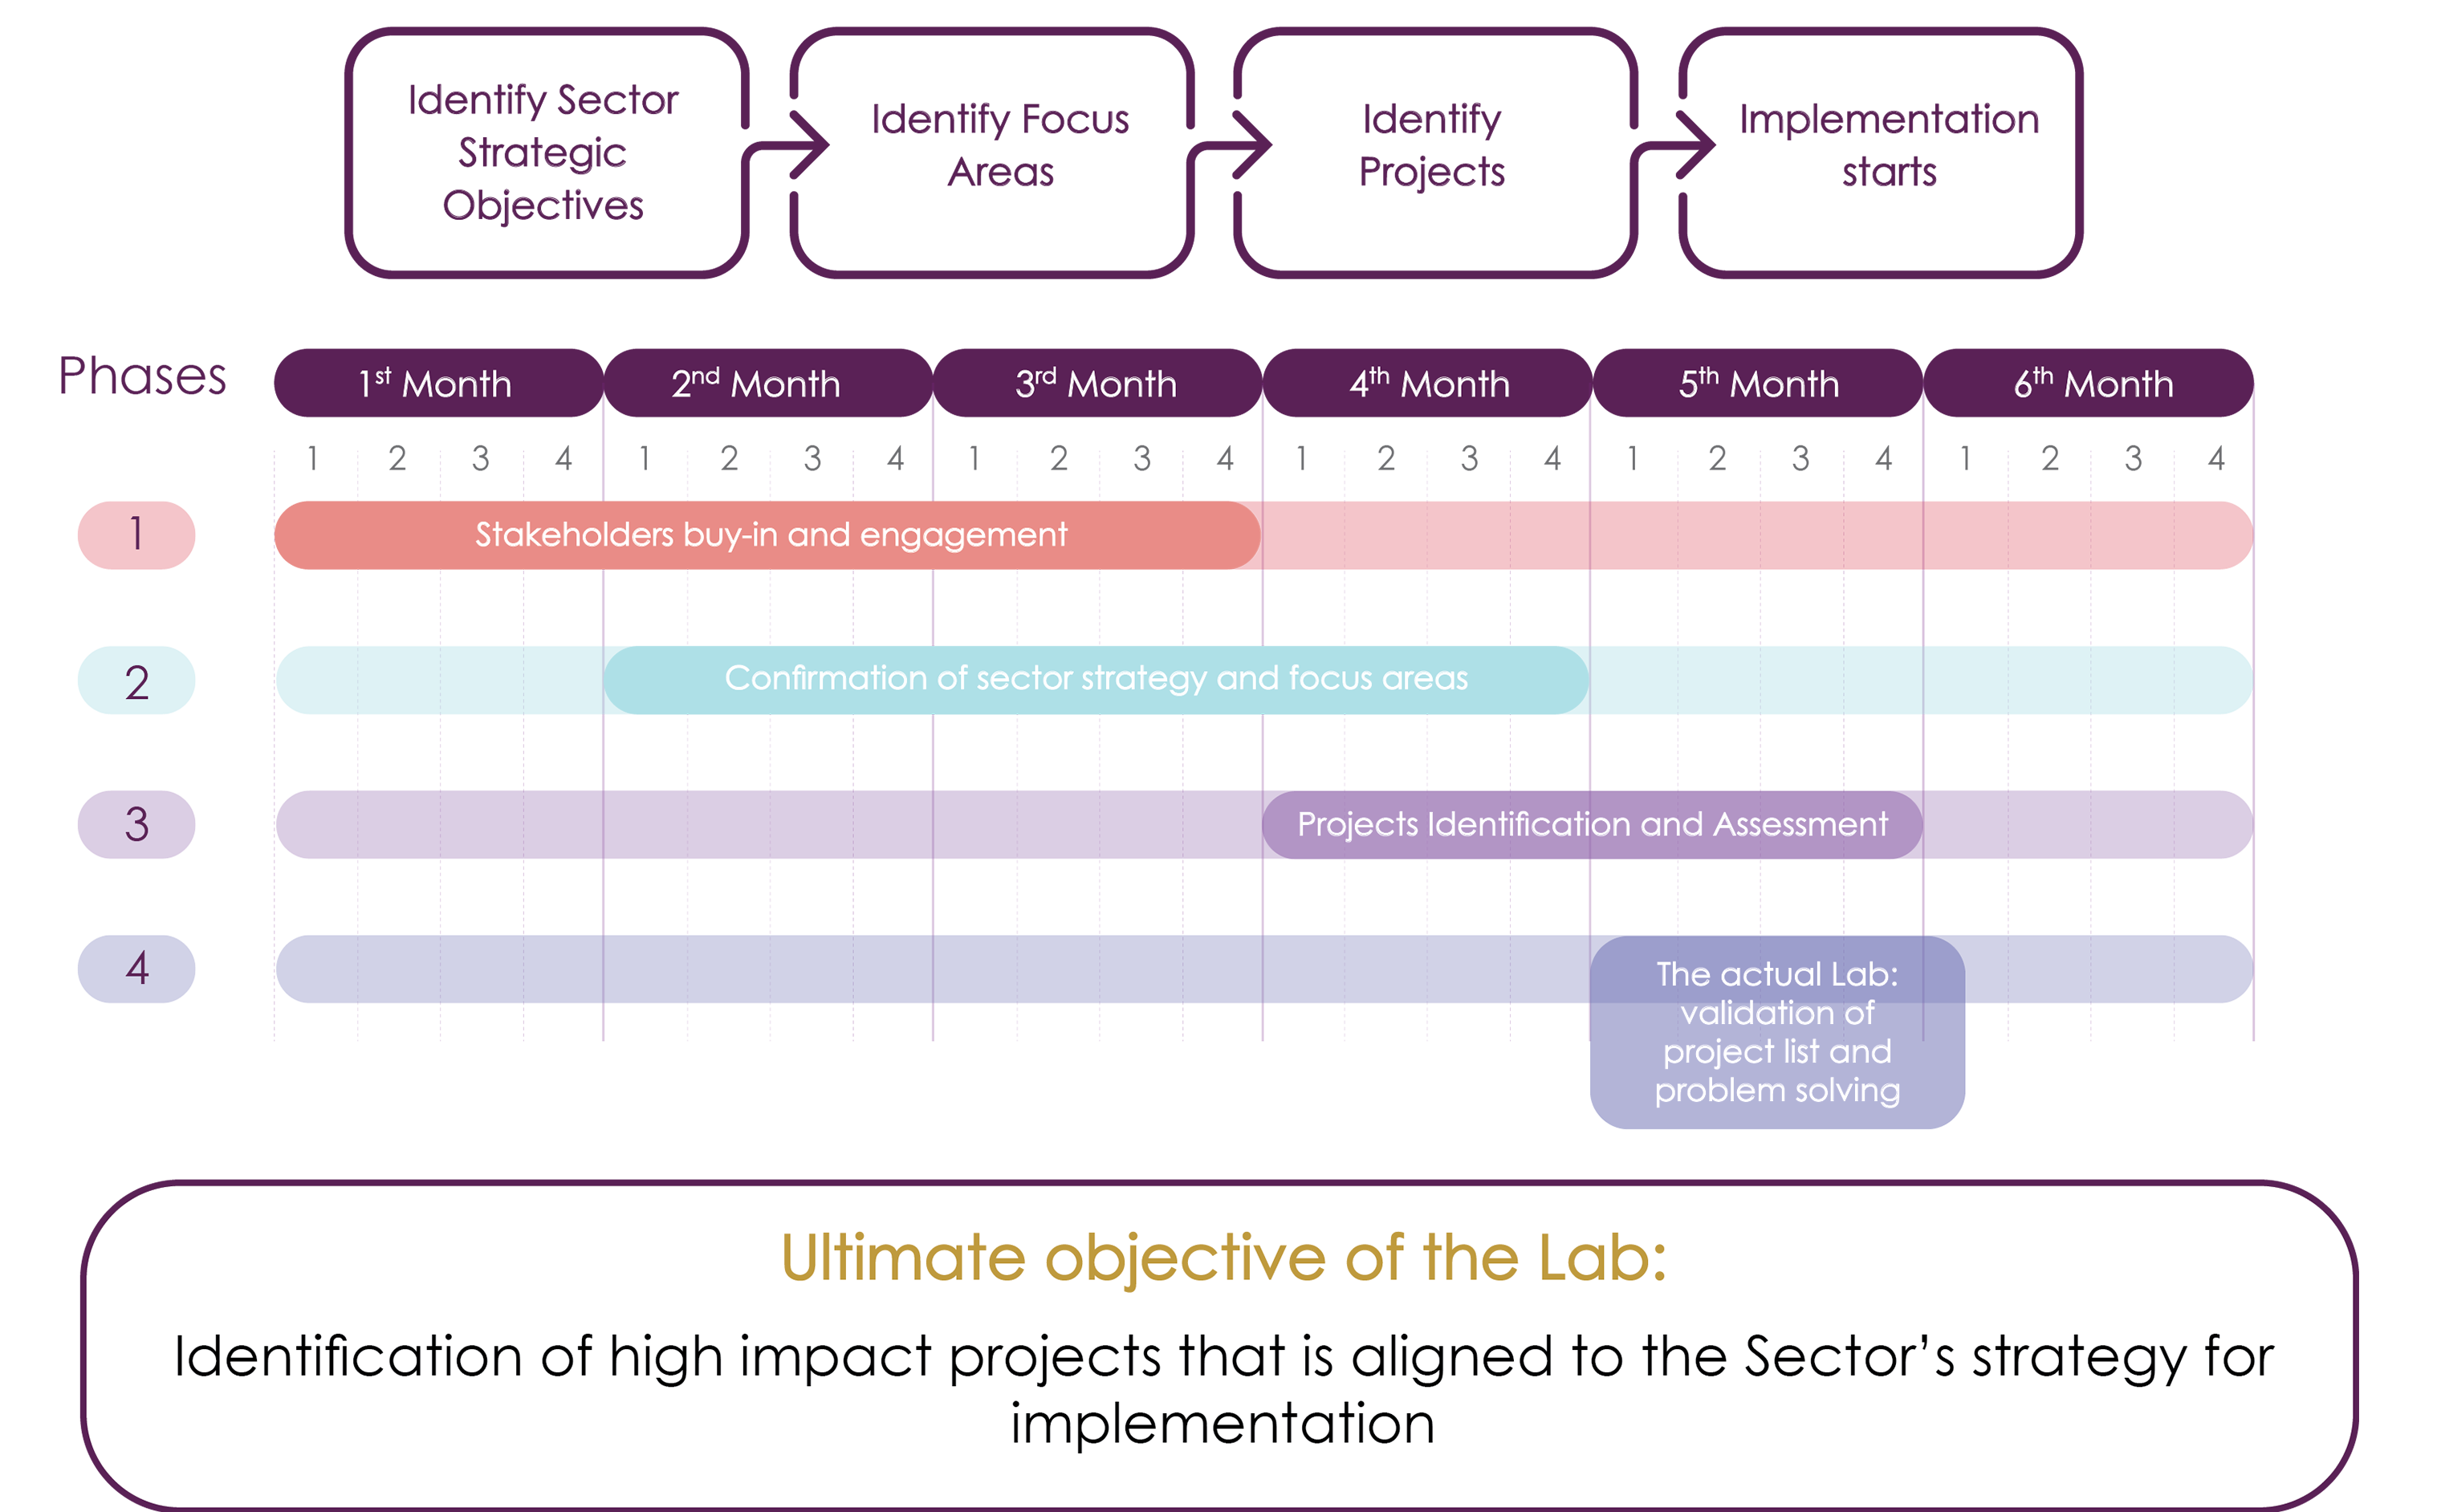 The approach of the lab consists of 4 major phases